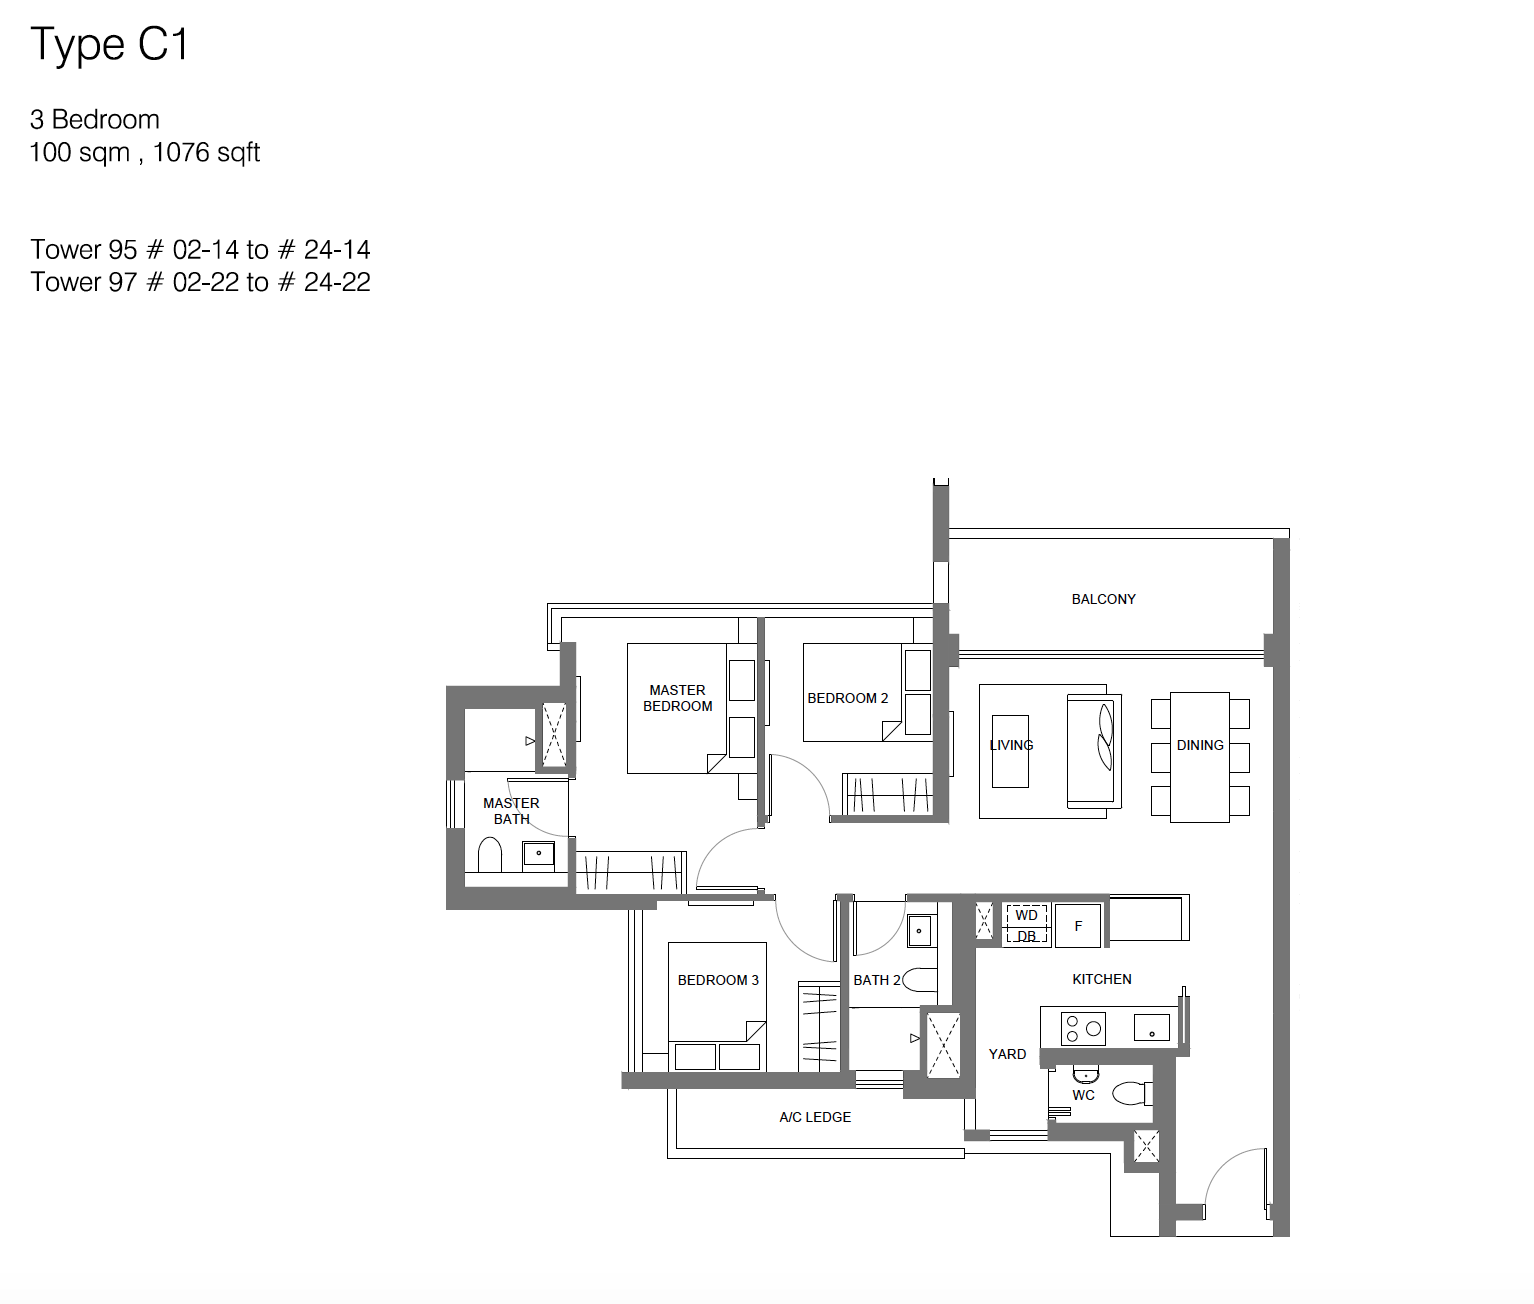 Principal Garden floor plan - 3 bedroom